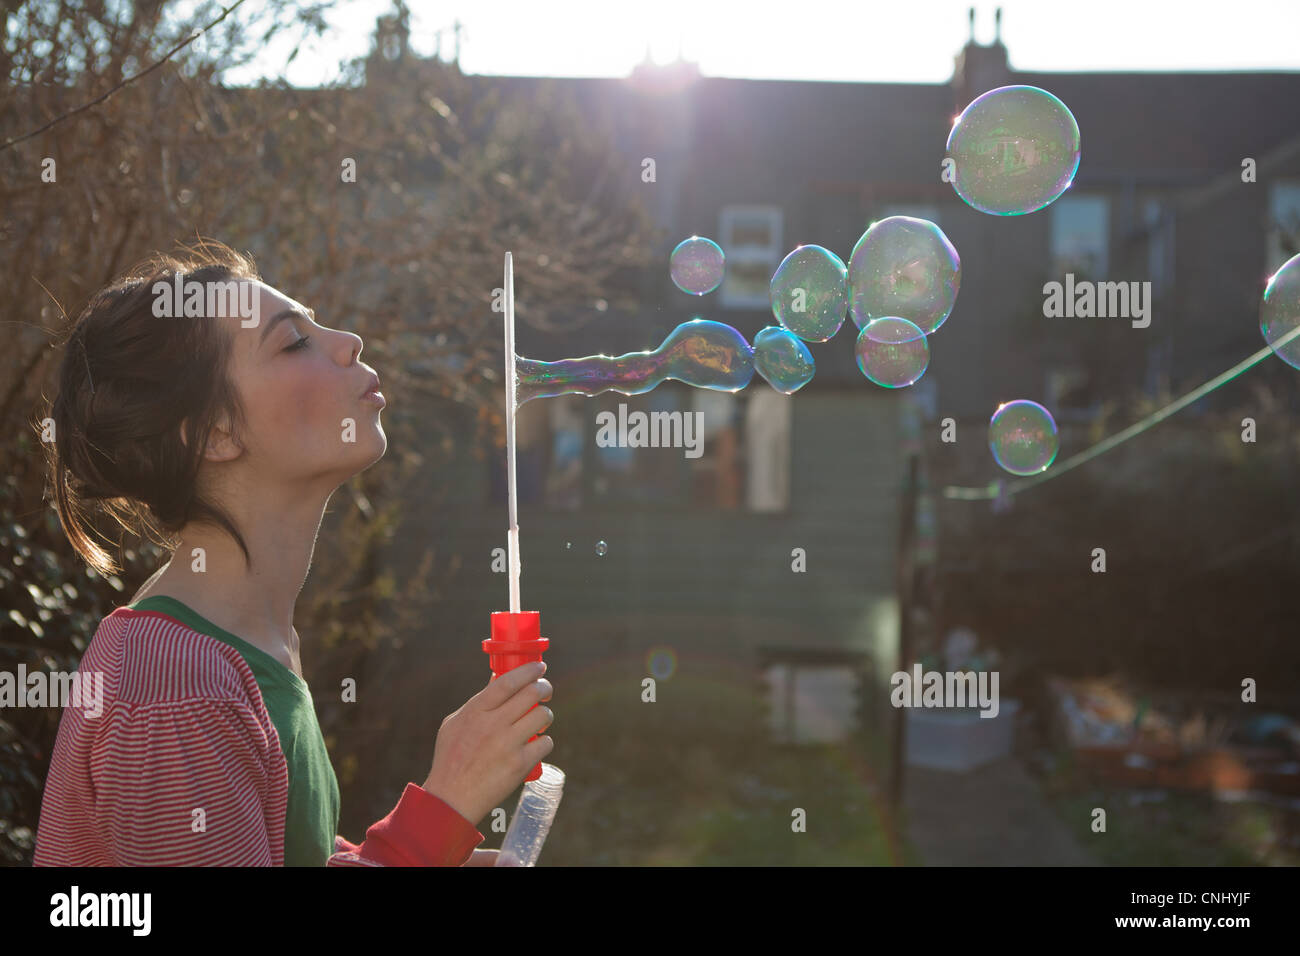 Young woman blowing bubbles outdoors Photo Stock